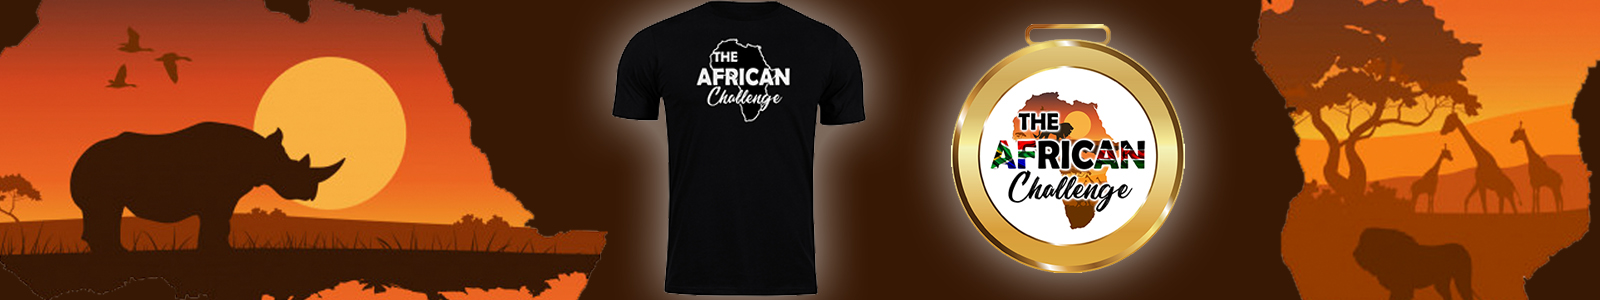 tee-and-medal-banner_web The African Challenge Kenya Entry